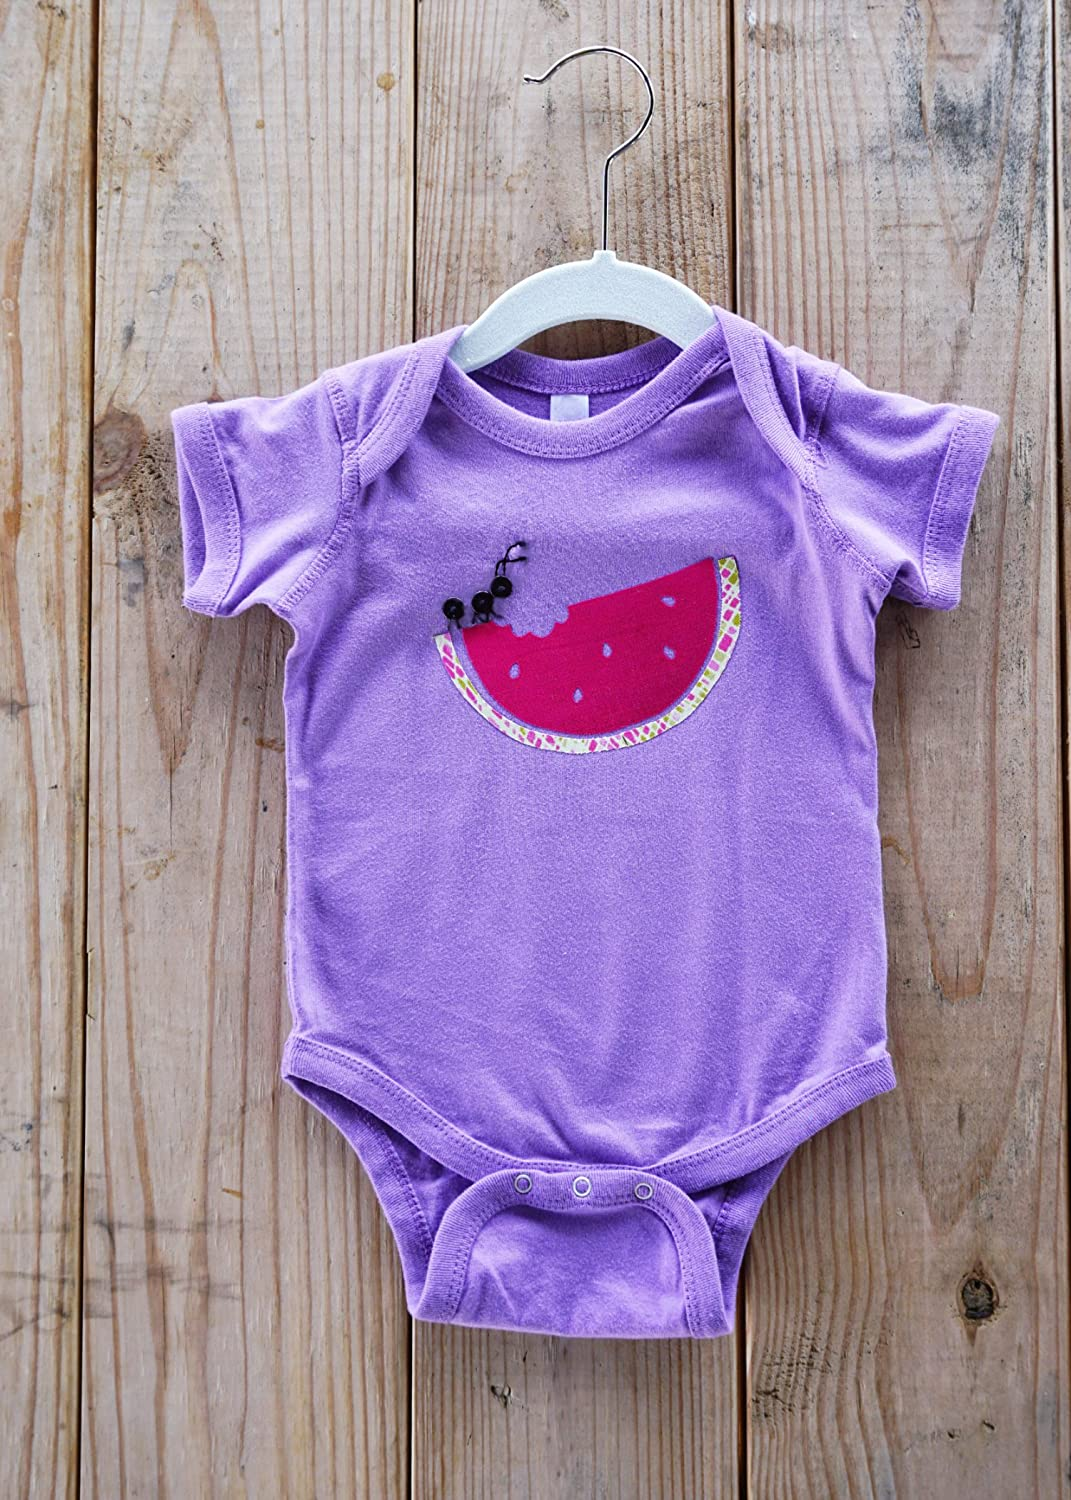 Popular shop is the Special Campaign lowest price challenge Watermelon Onesie